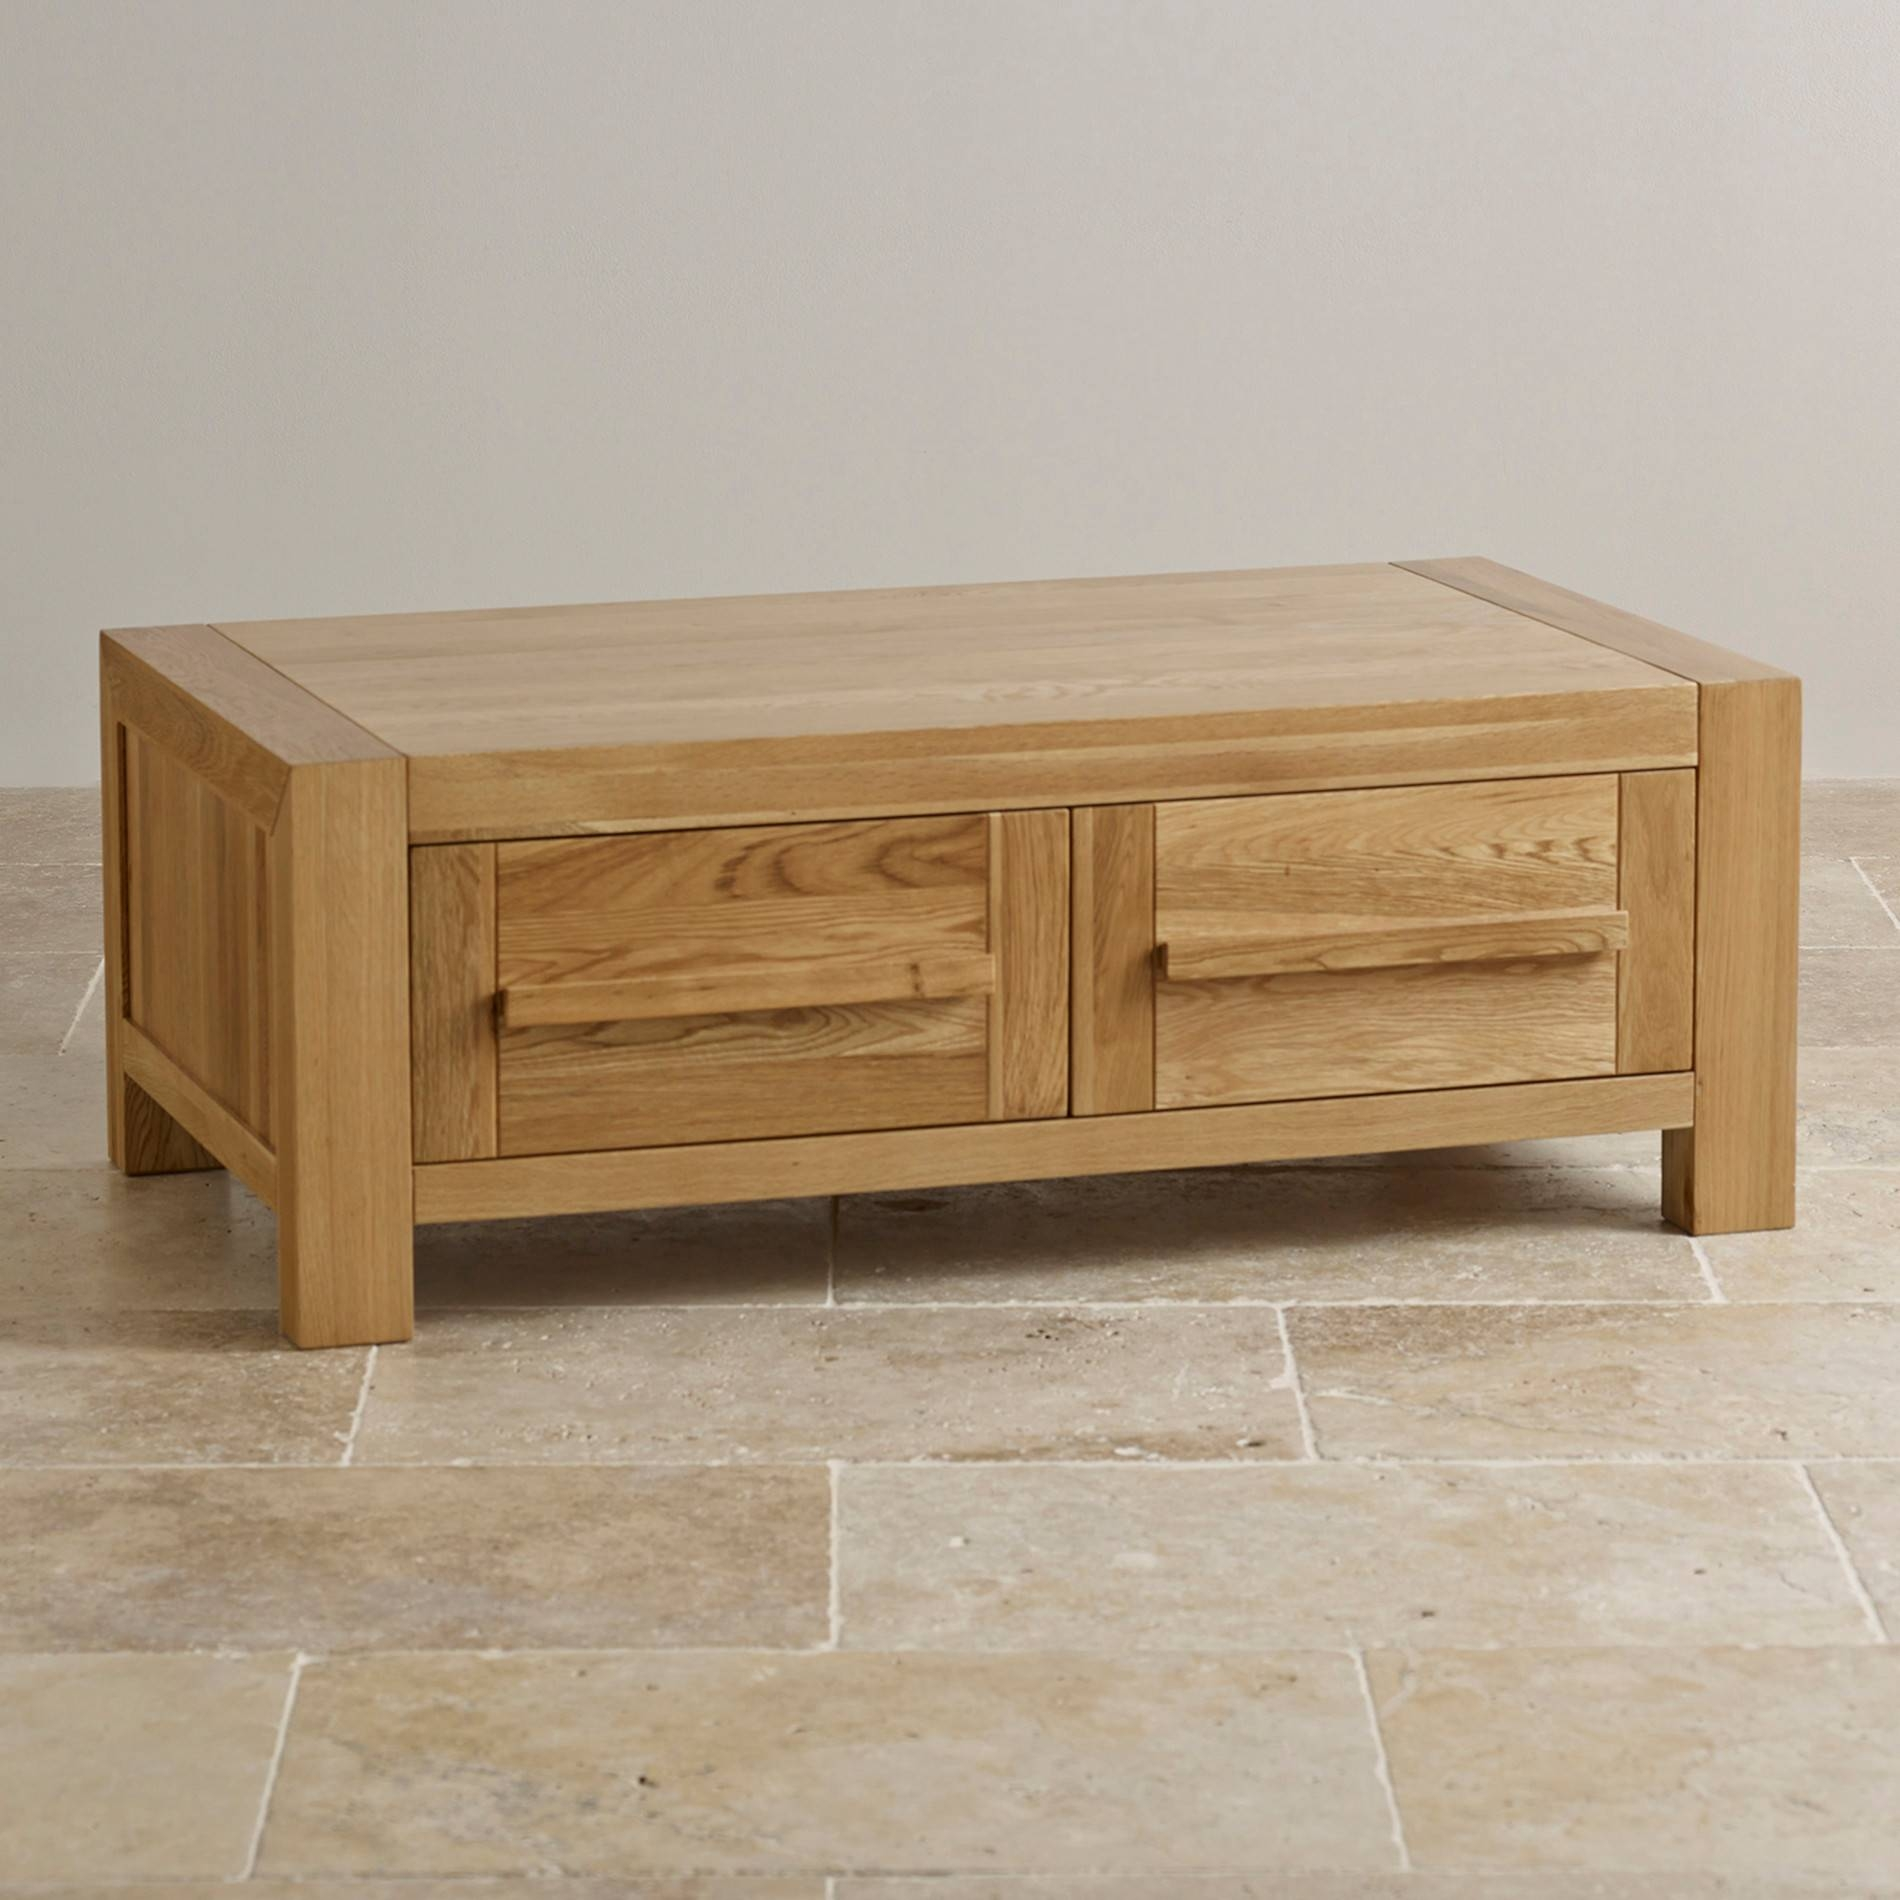 Fresco 2 Drawer Coffee Table In Solid Oak | Oak Furniture Land regarding Solid Oak Coffee Table With Storage (Image 5 of 15)